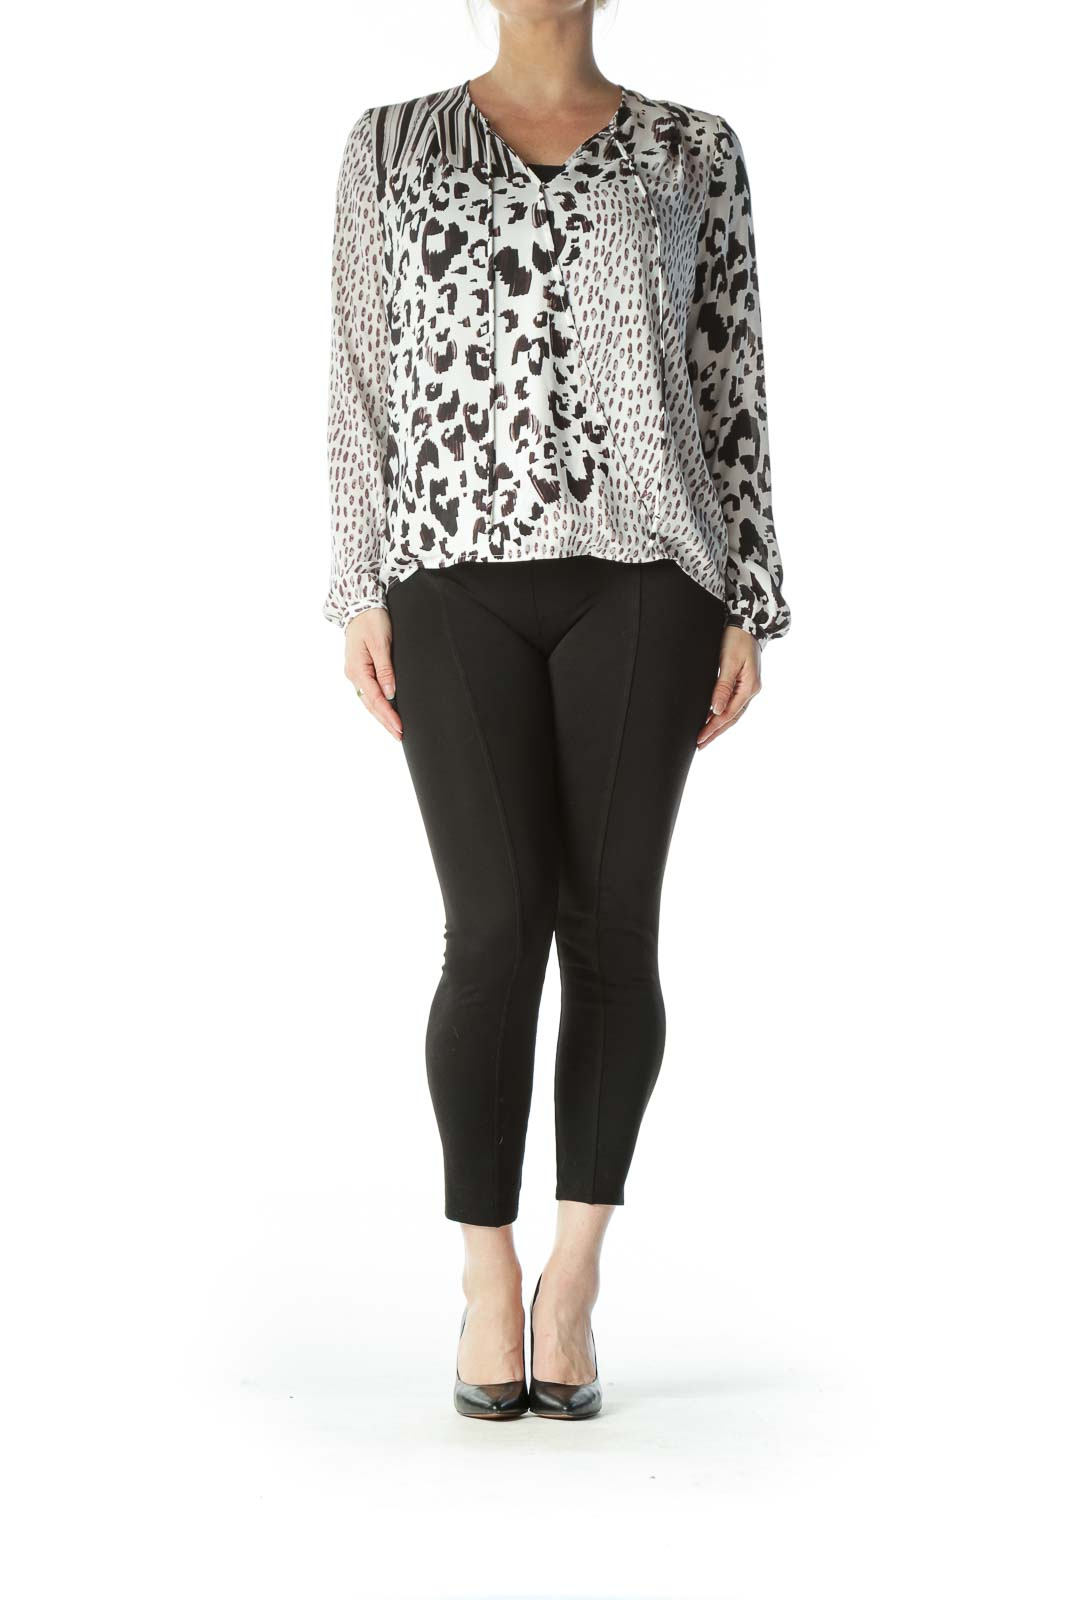 White and Brown Animal-Print Blouse